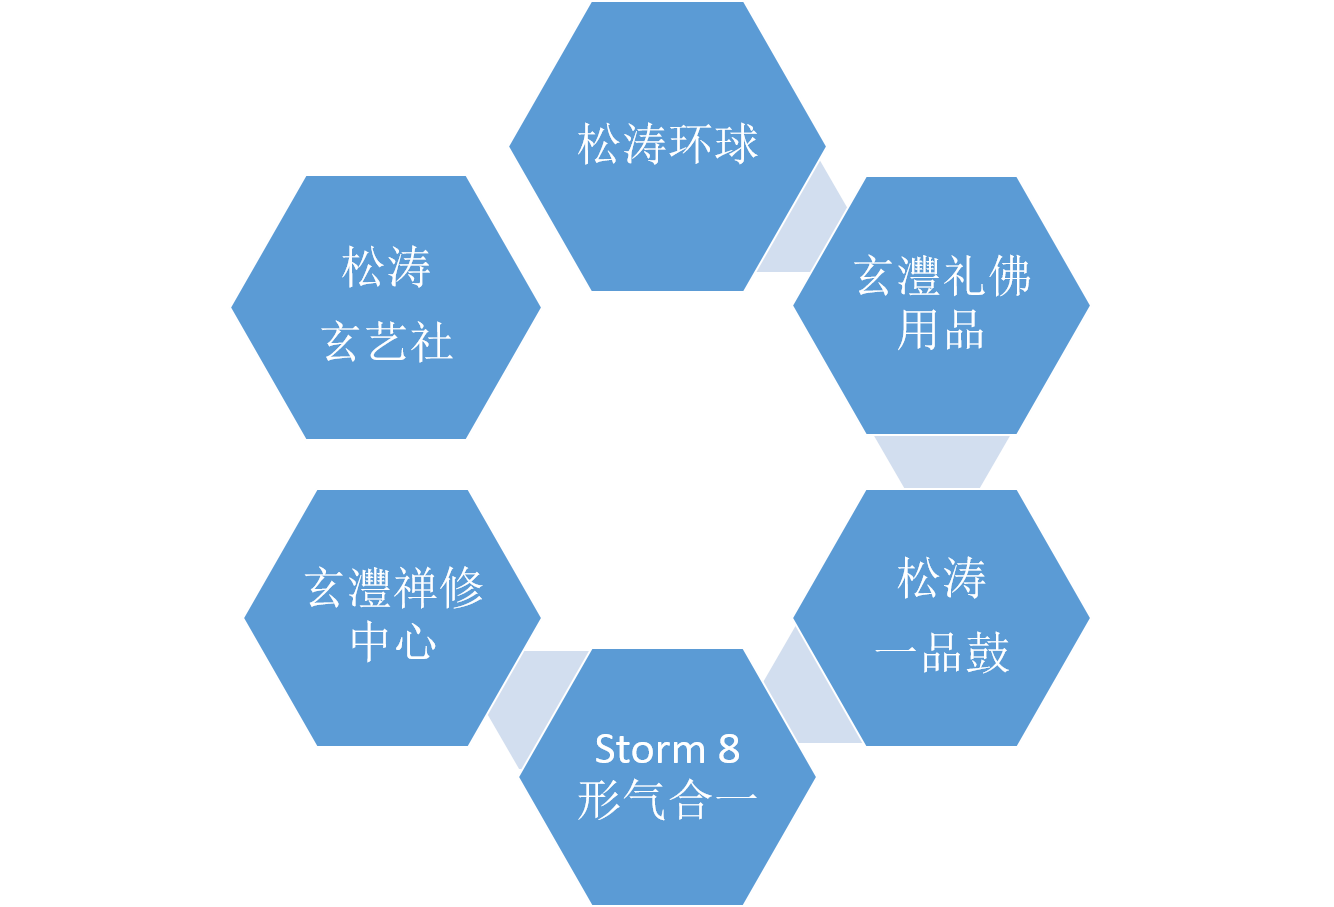 ST 简介图.png